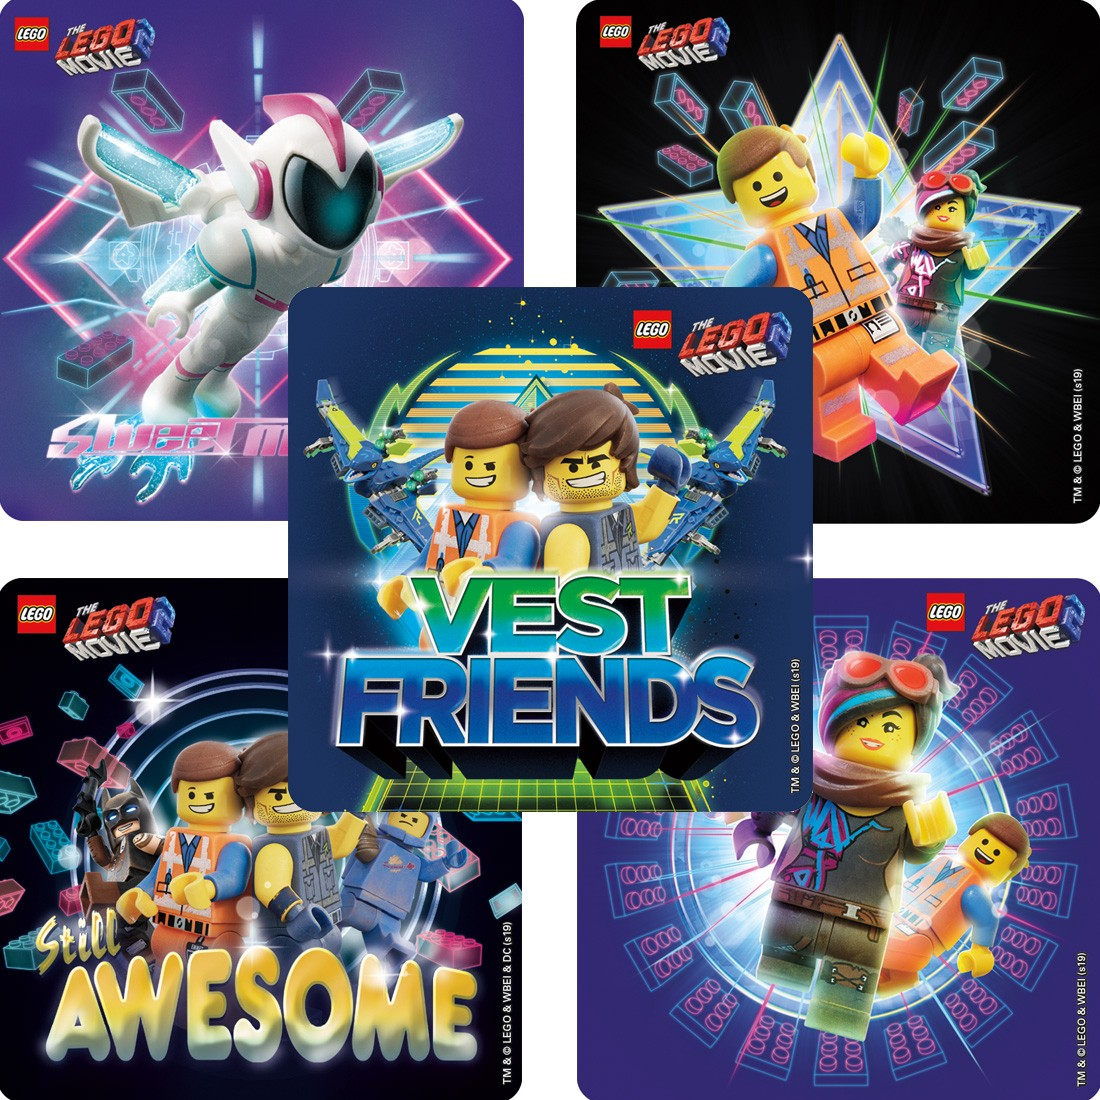 The LEGO Movie 2: The Second Part Stickers   [image]